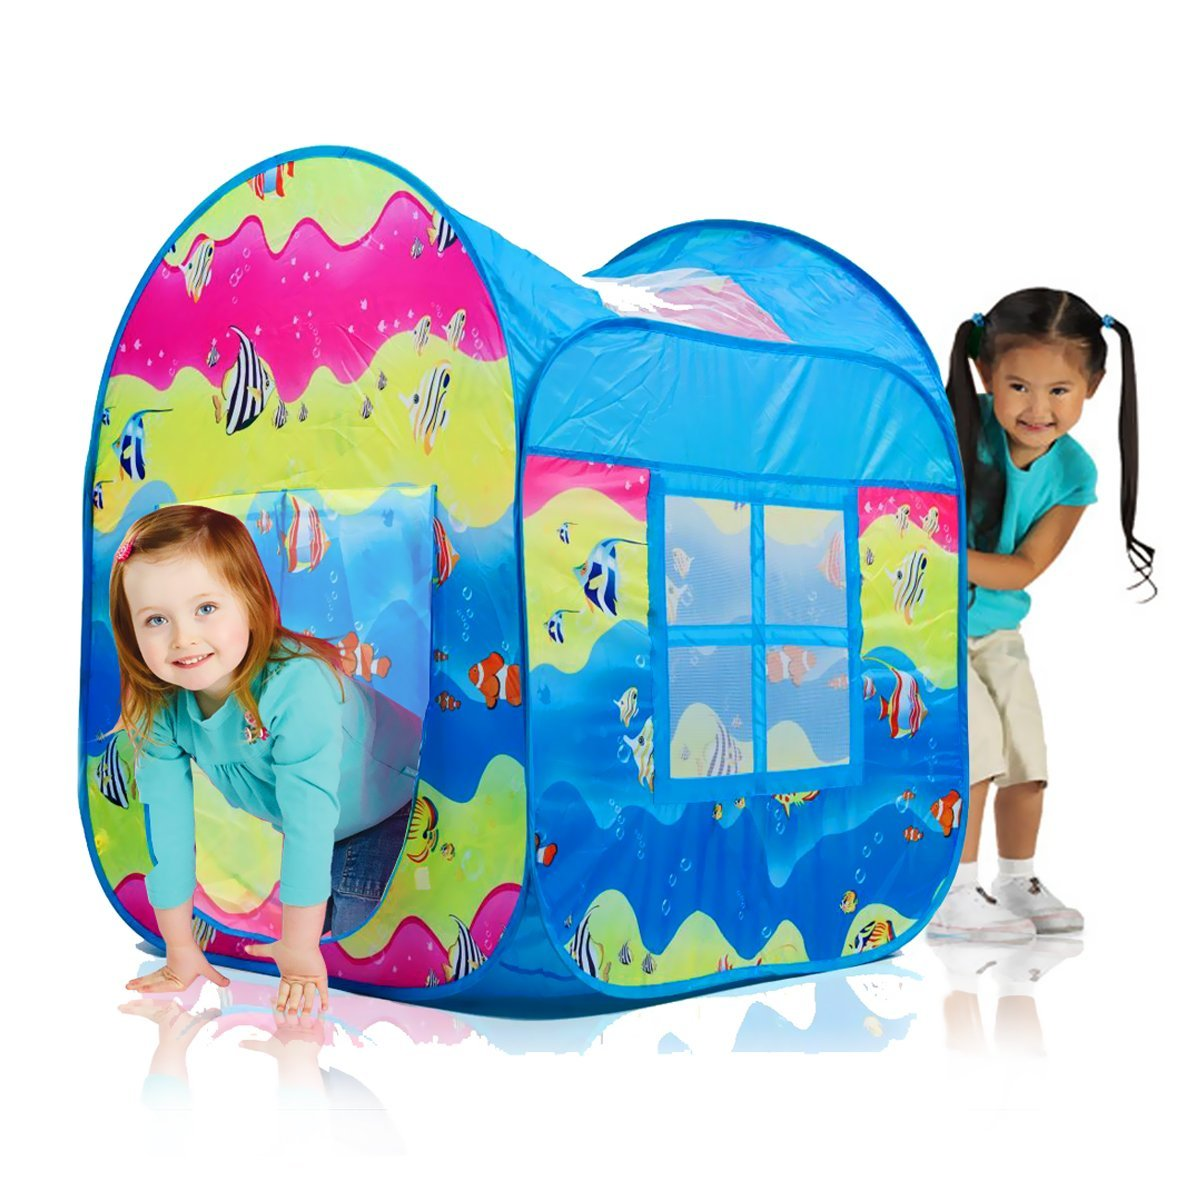 Indoor & Outdoor Pop Up Play Tent in Fun Underwater Design w/ Mesh Windows, Great for Boosting Creativity & Educational Fun, By Dimple DimpleChild DC11639